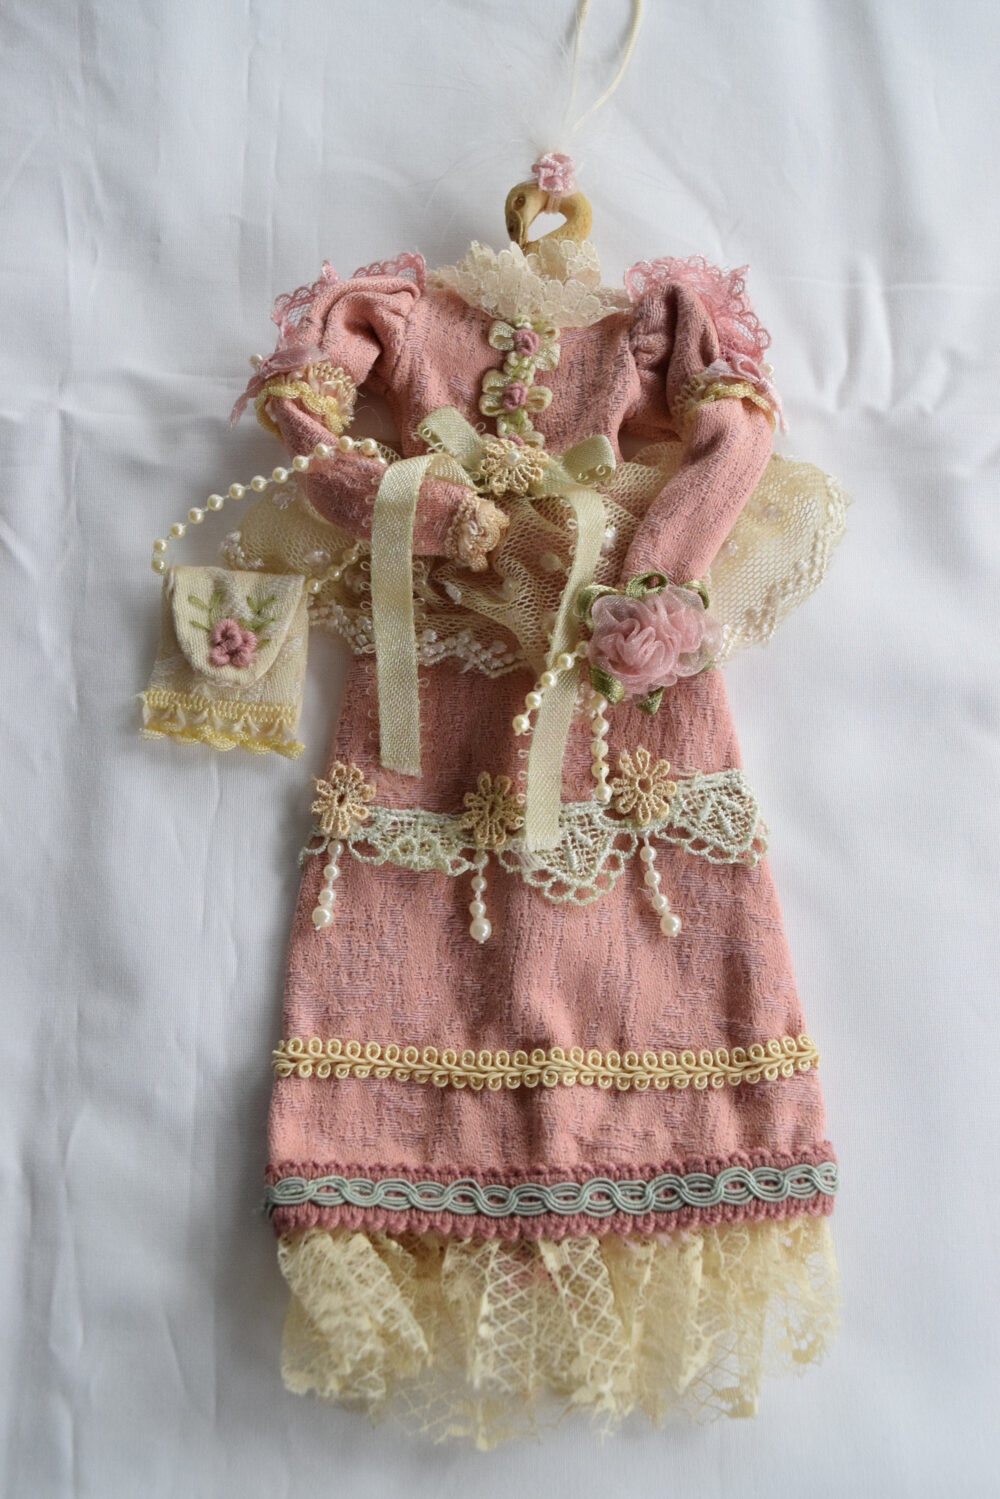 Victorian Dress Ornament Doll Size Christmas Lace Trim Vintage Girl Purse Rose Pink Ecru Swan Hanger Tree Decoration Floral Pearl Feathers